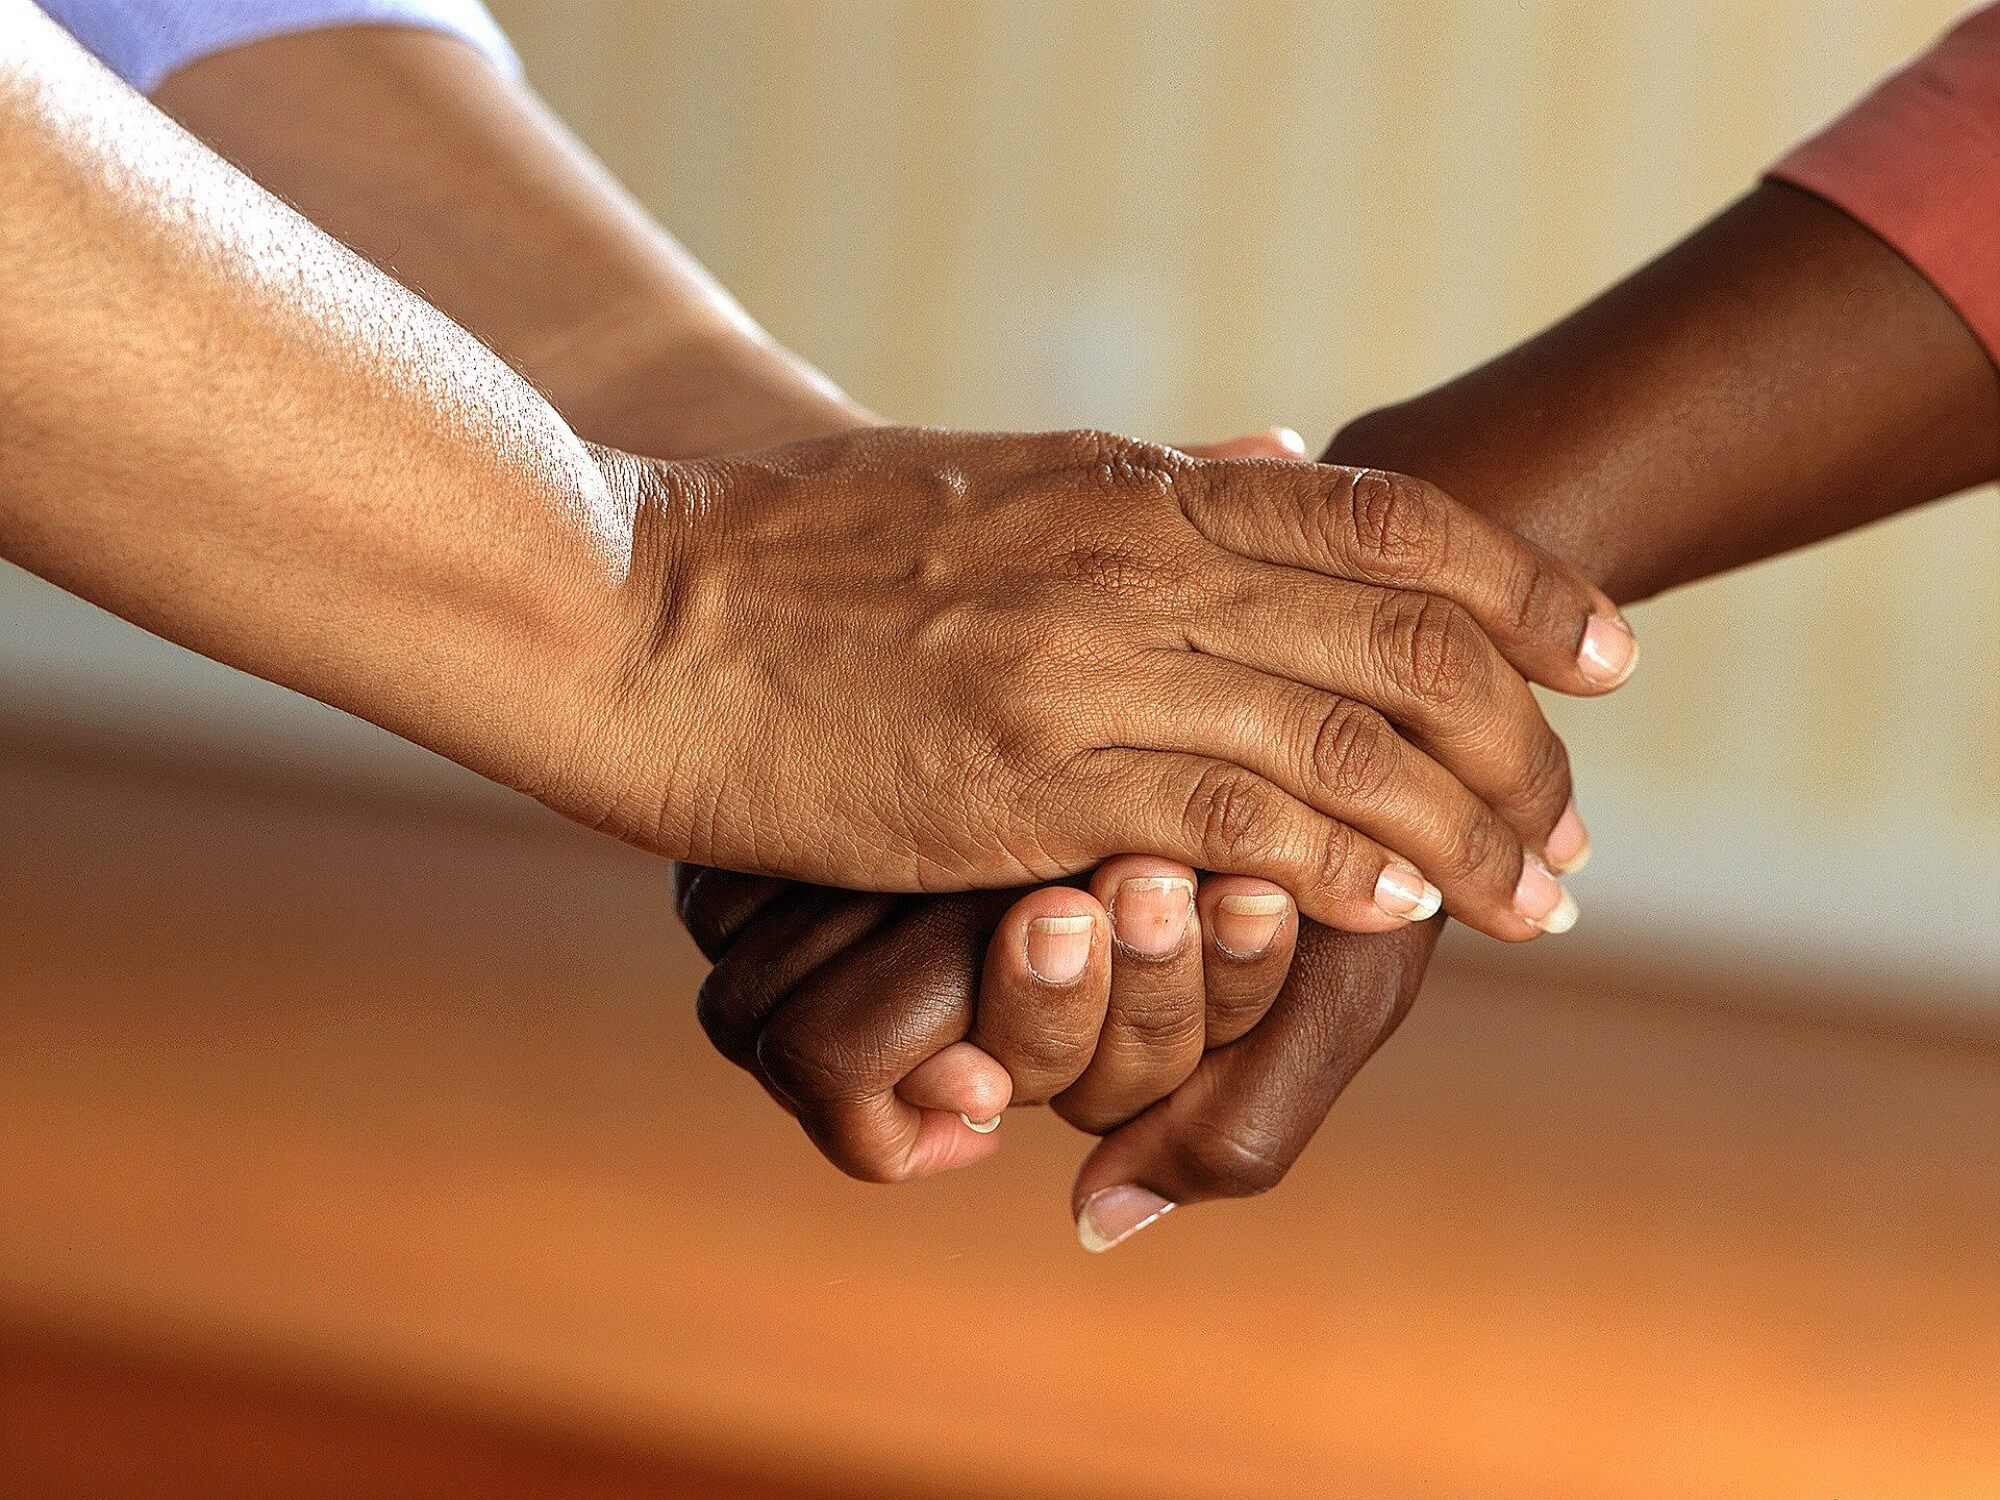 Two people clasping hands to support one another.